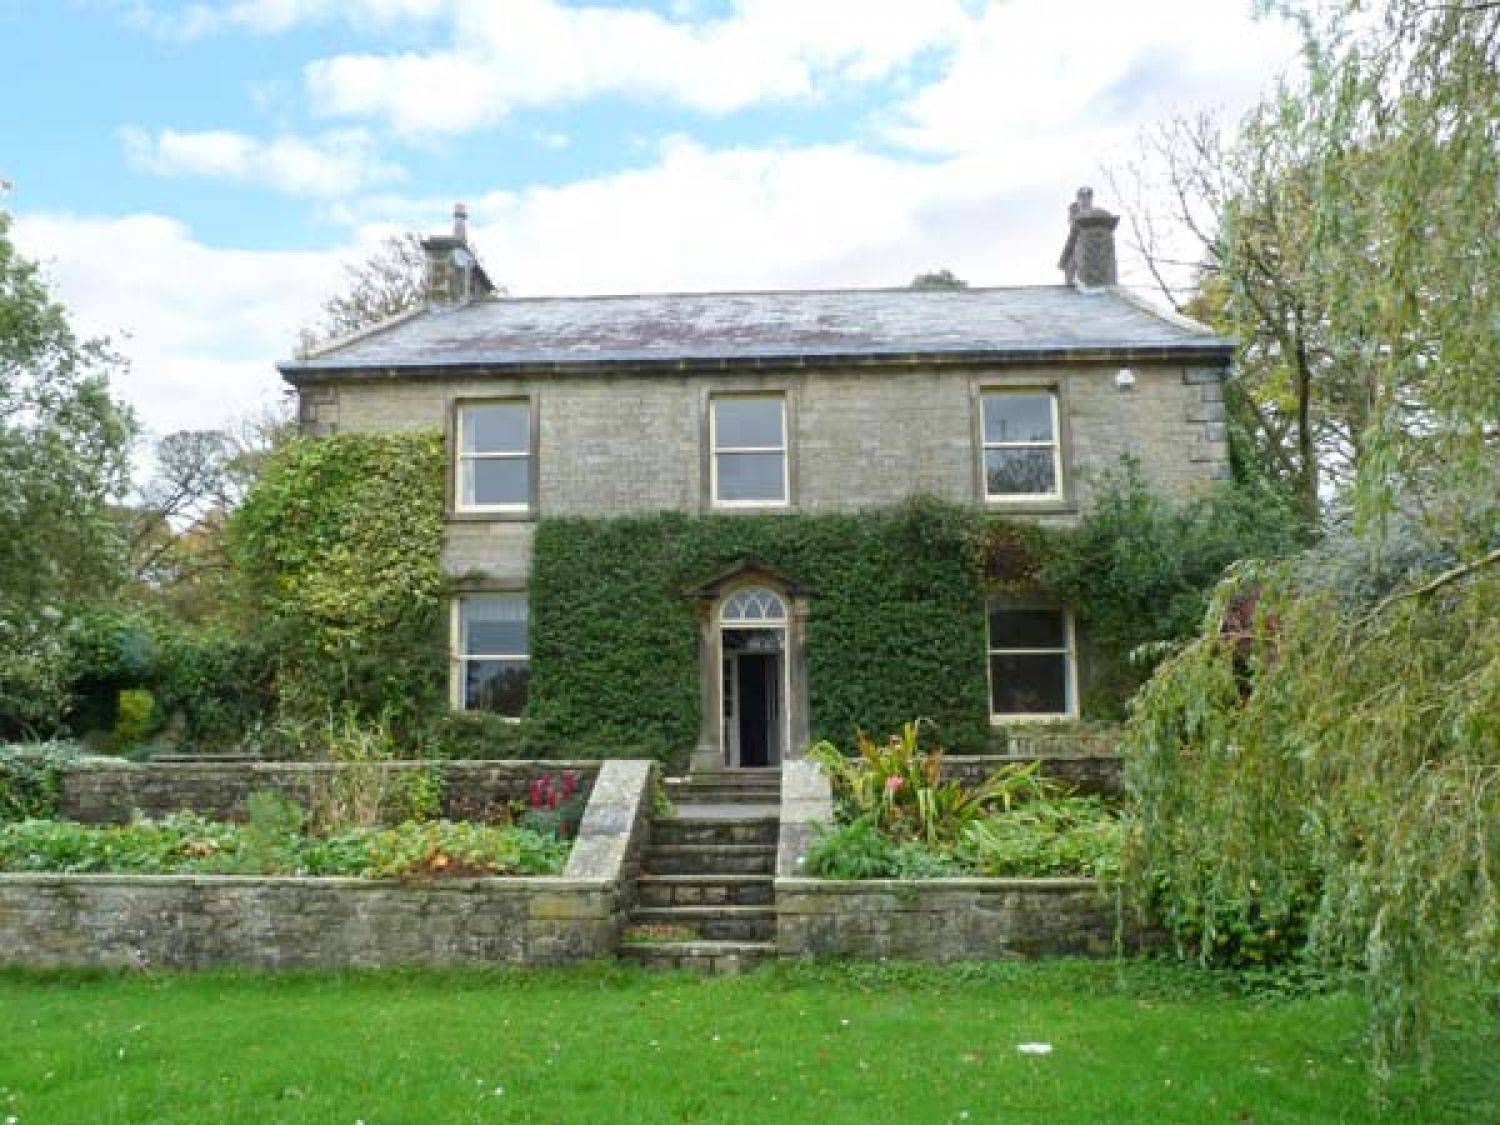 Mearbeck House Settle Mearbeck Yorkshire Dales